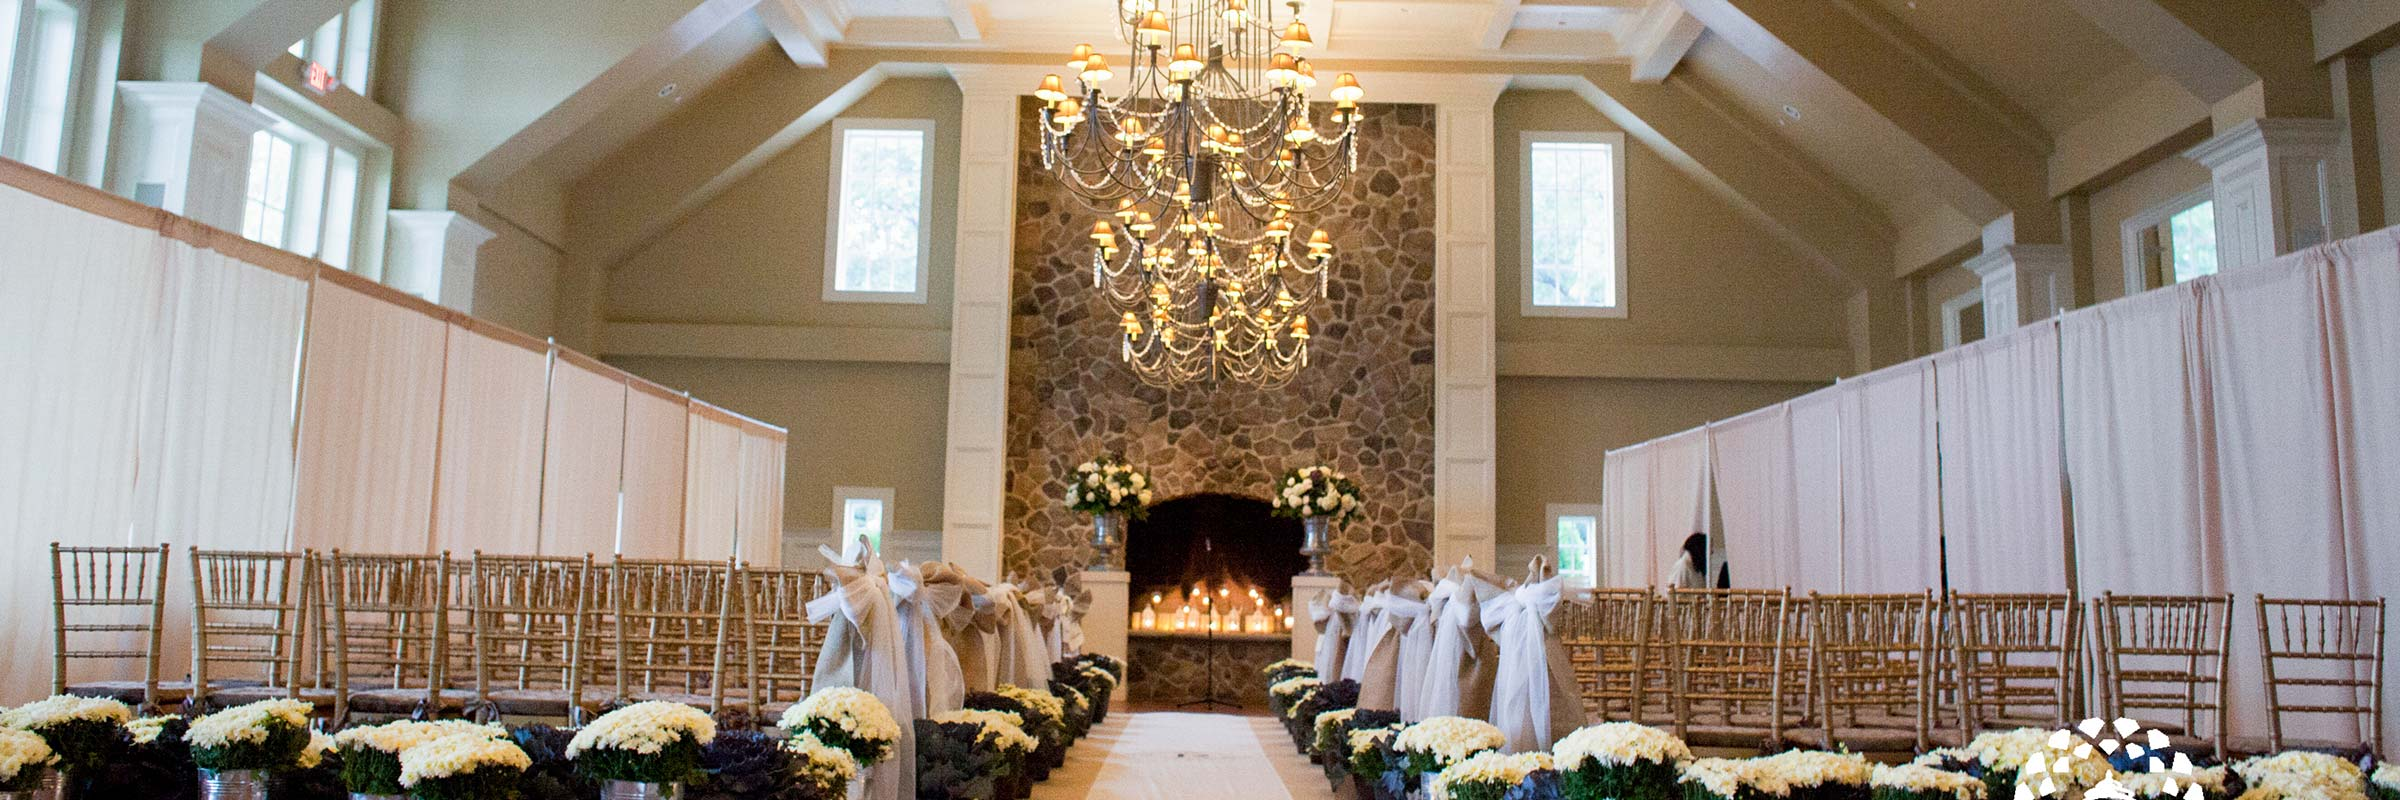 Wedding Ceremony Chandelier Flowers